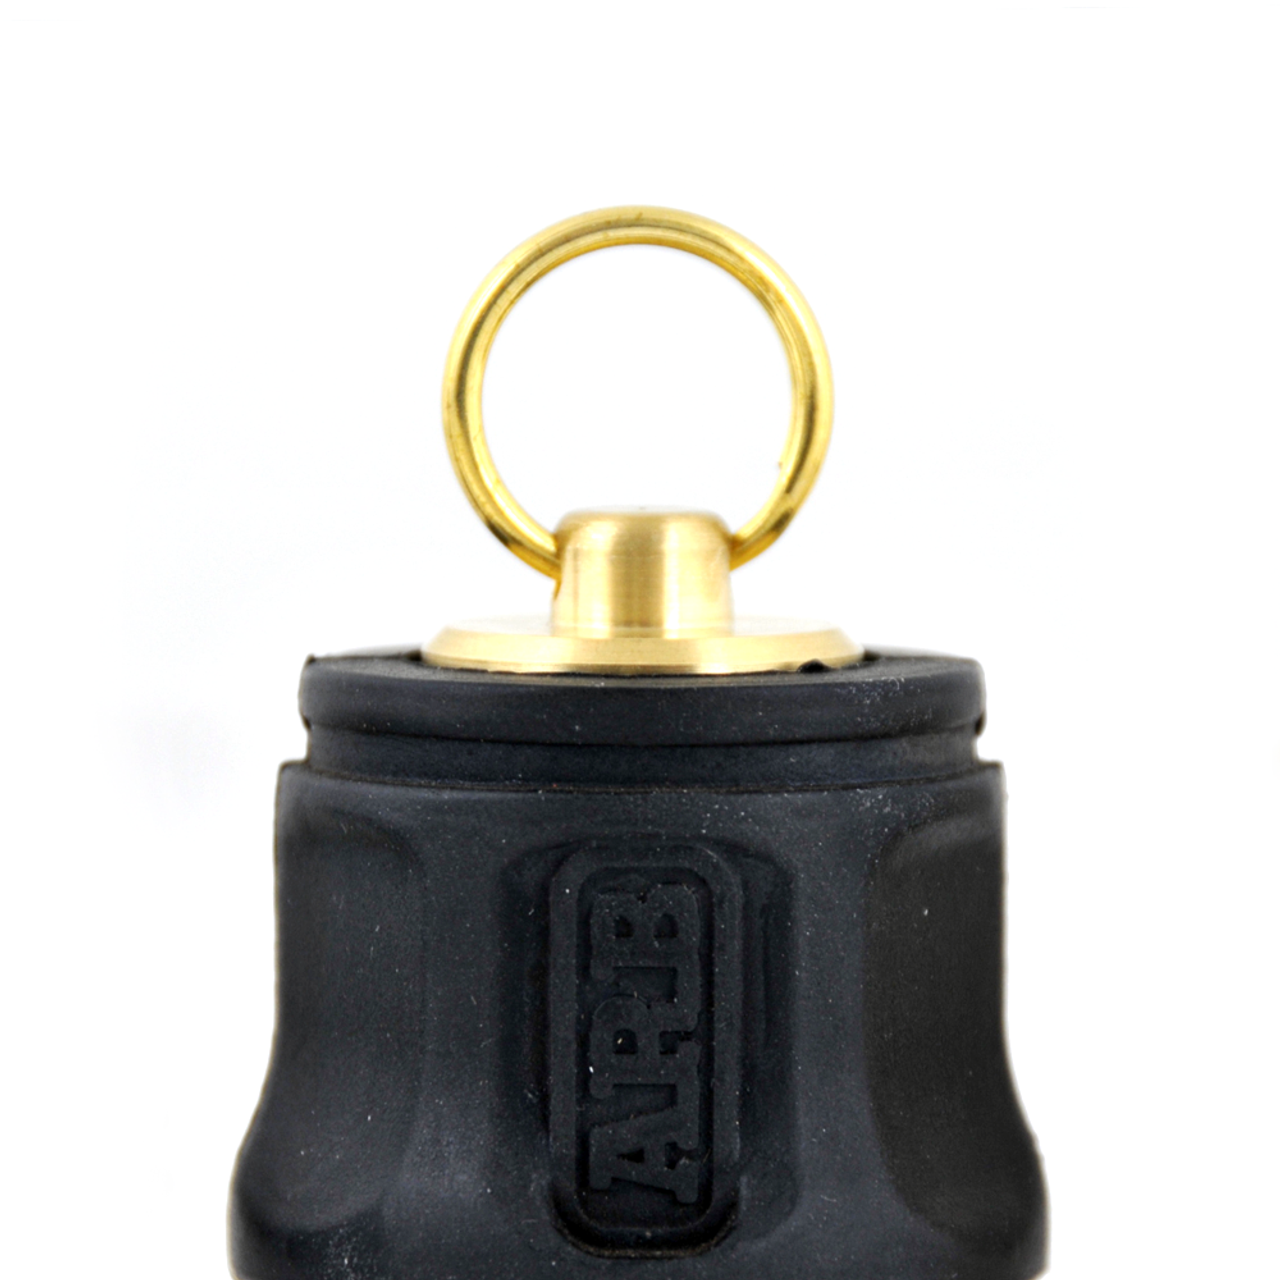 ARB Fitting Air Coupler Pacifier (ACP-ARB)- Brass